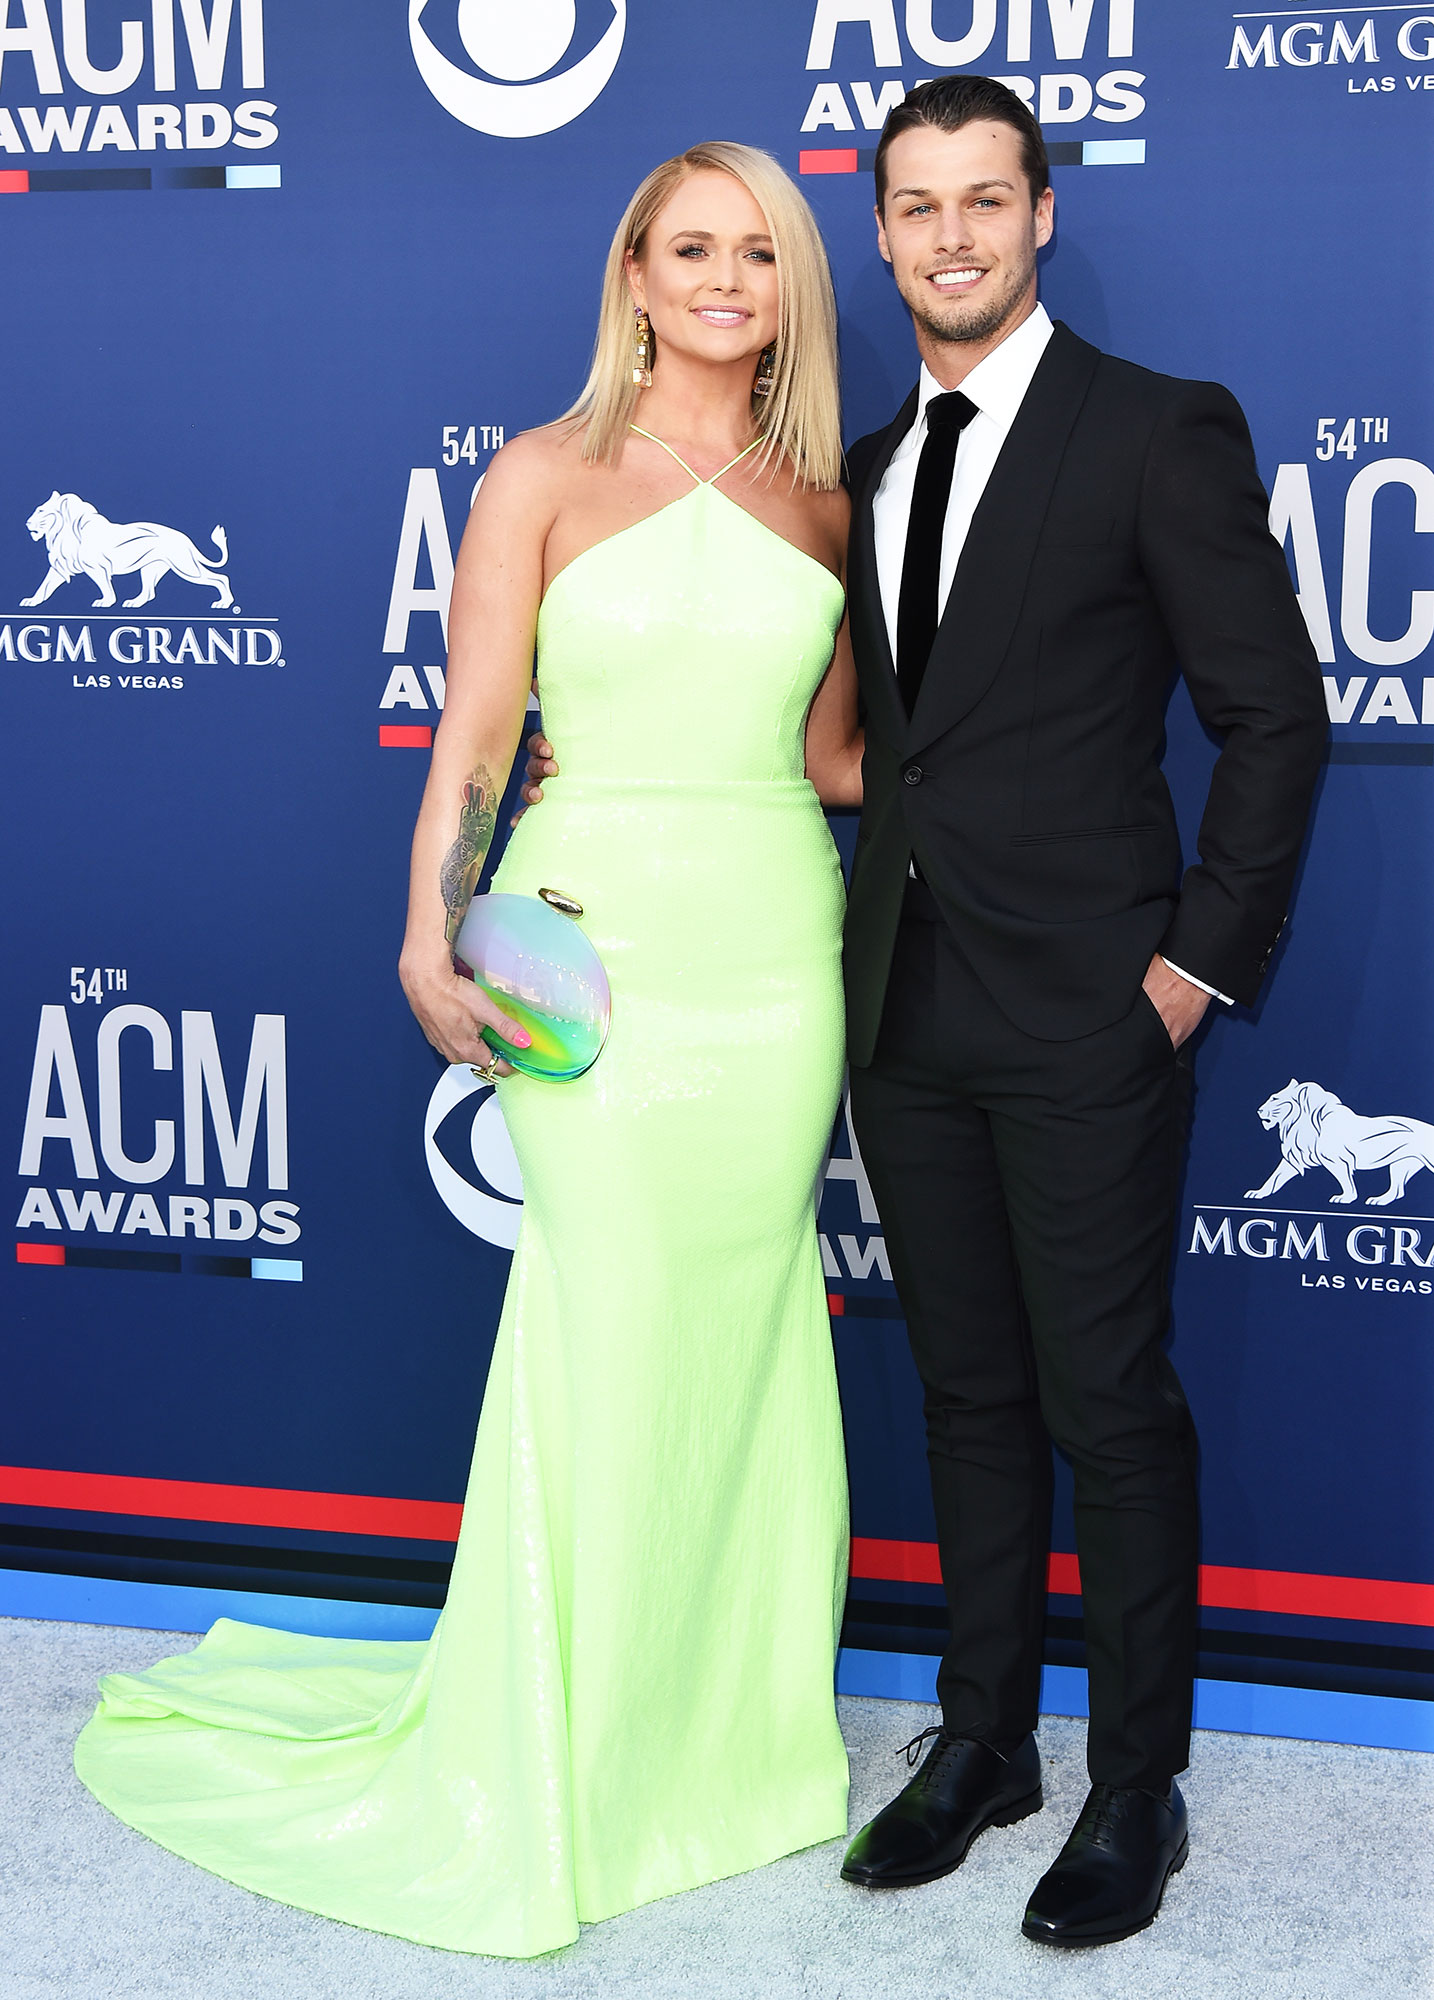 Miranda Lambert and Brendan McLoughlin Smoking Hot Couples Style at the ACMs - For their first red carpet appearance together, McLoughlin kept things classic in a black suit and Lambert brightened things up in a neon green gown.